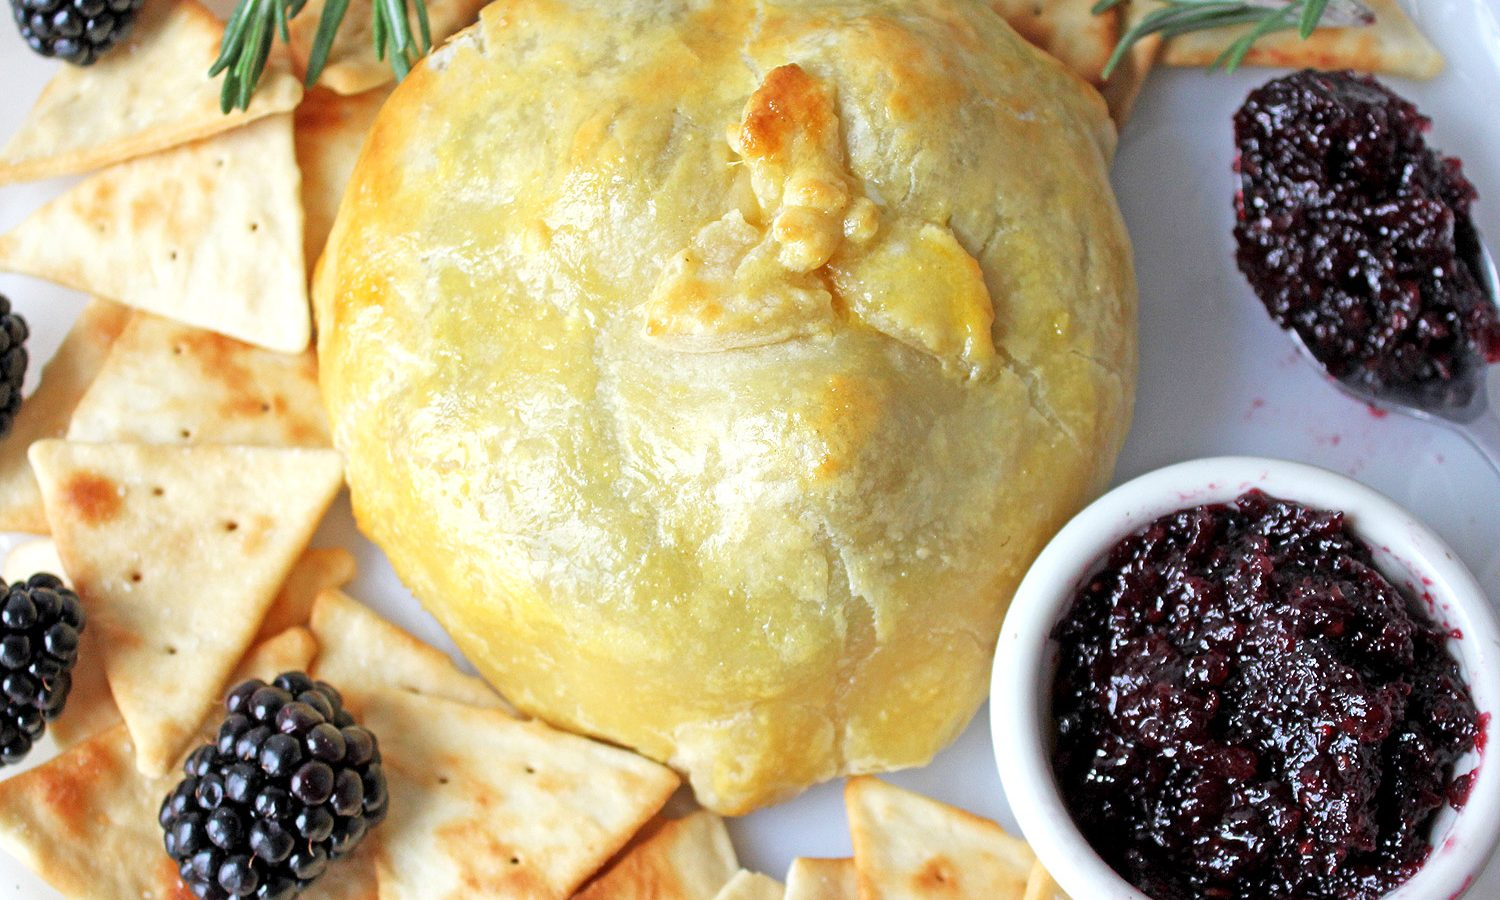 Baked brie berries and jam - easy appetizer